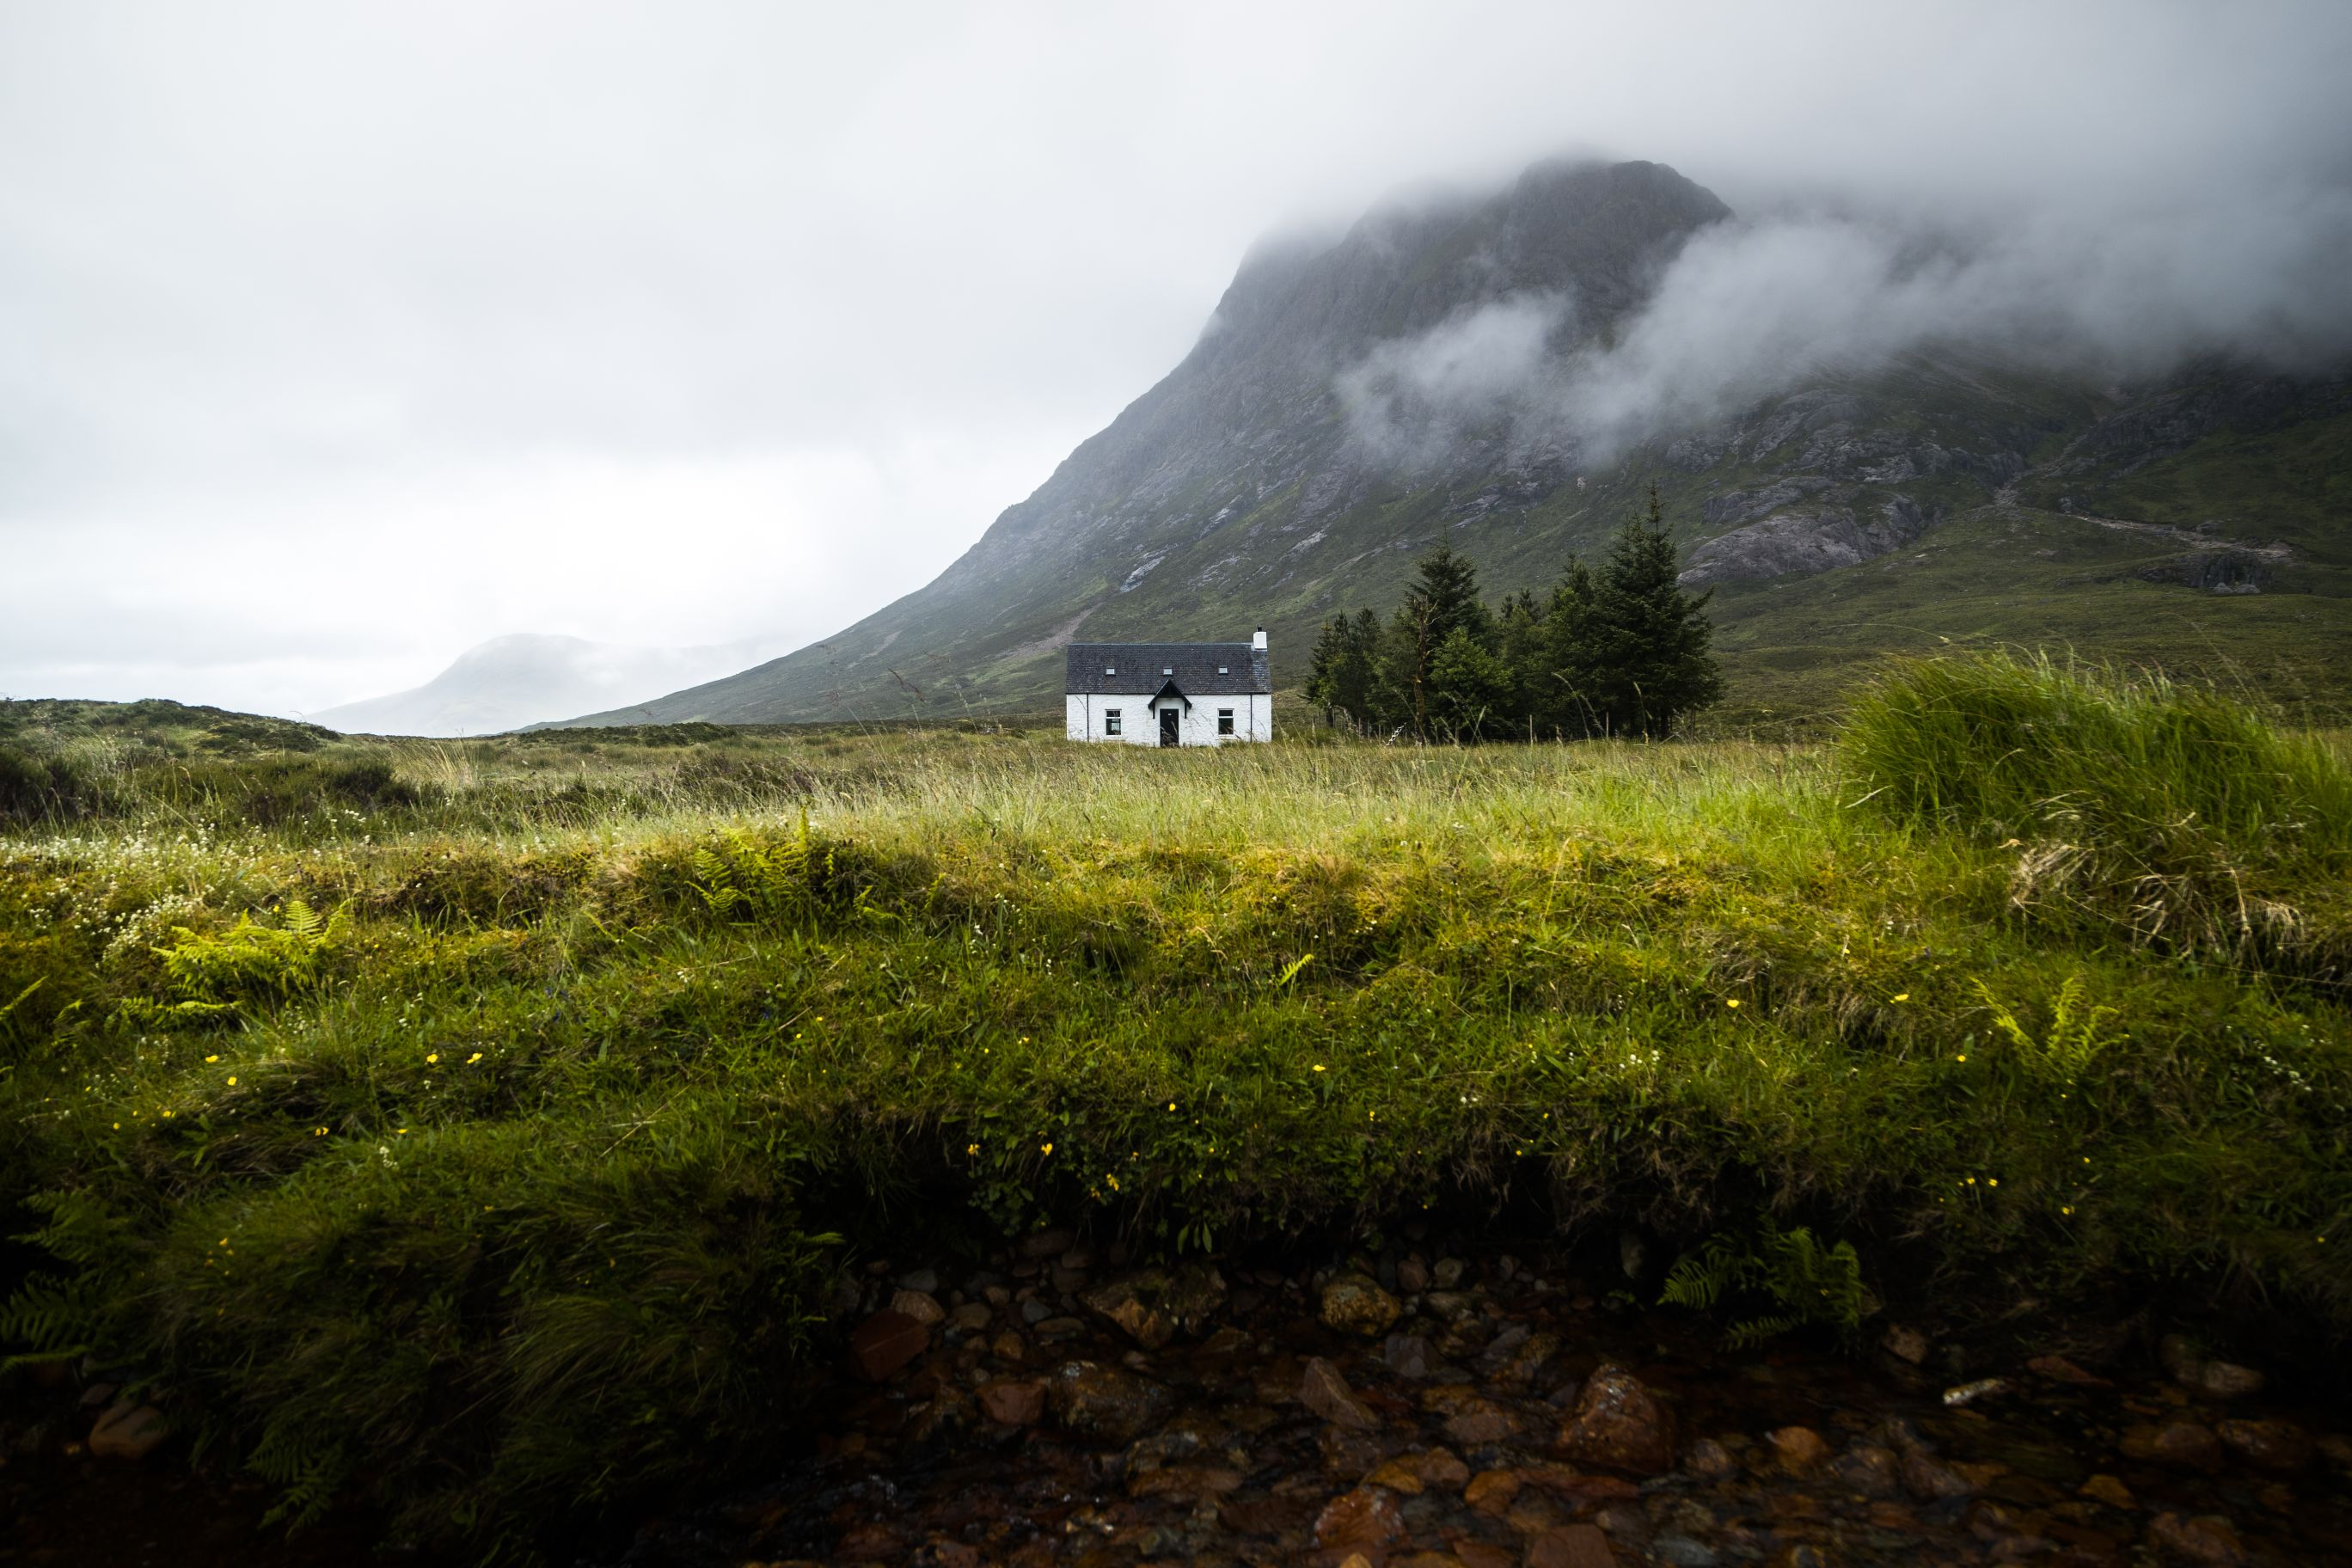 A lone house set amongst grassy field and mountain.